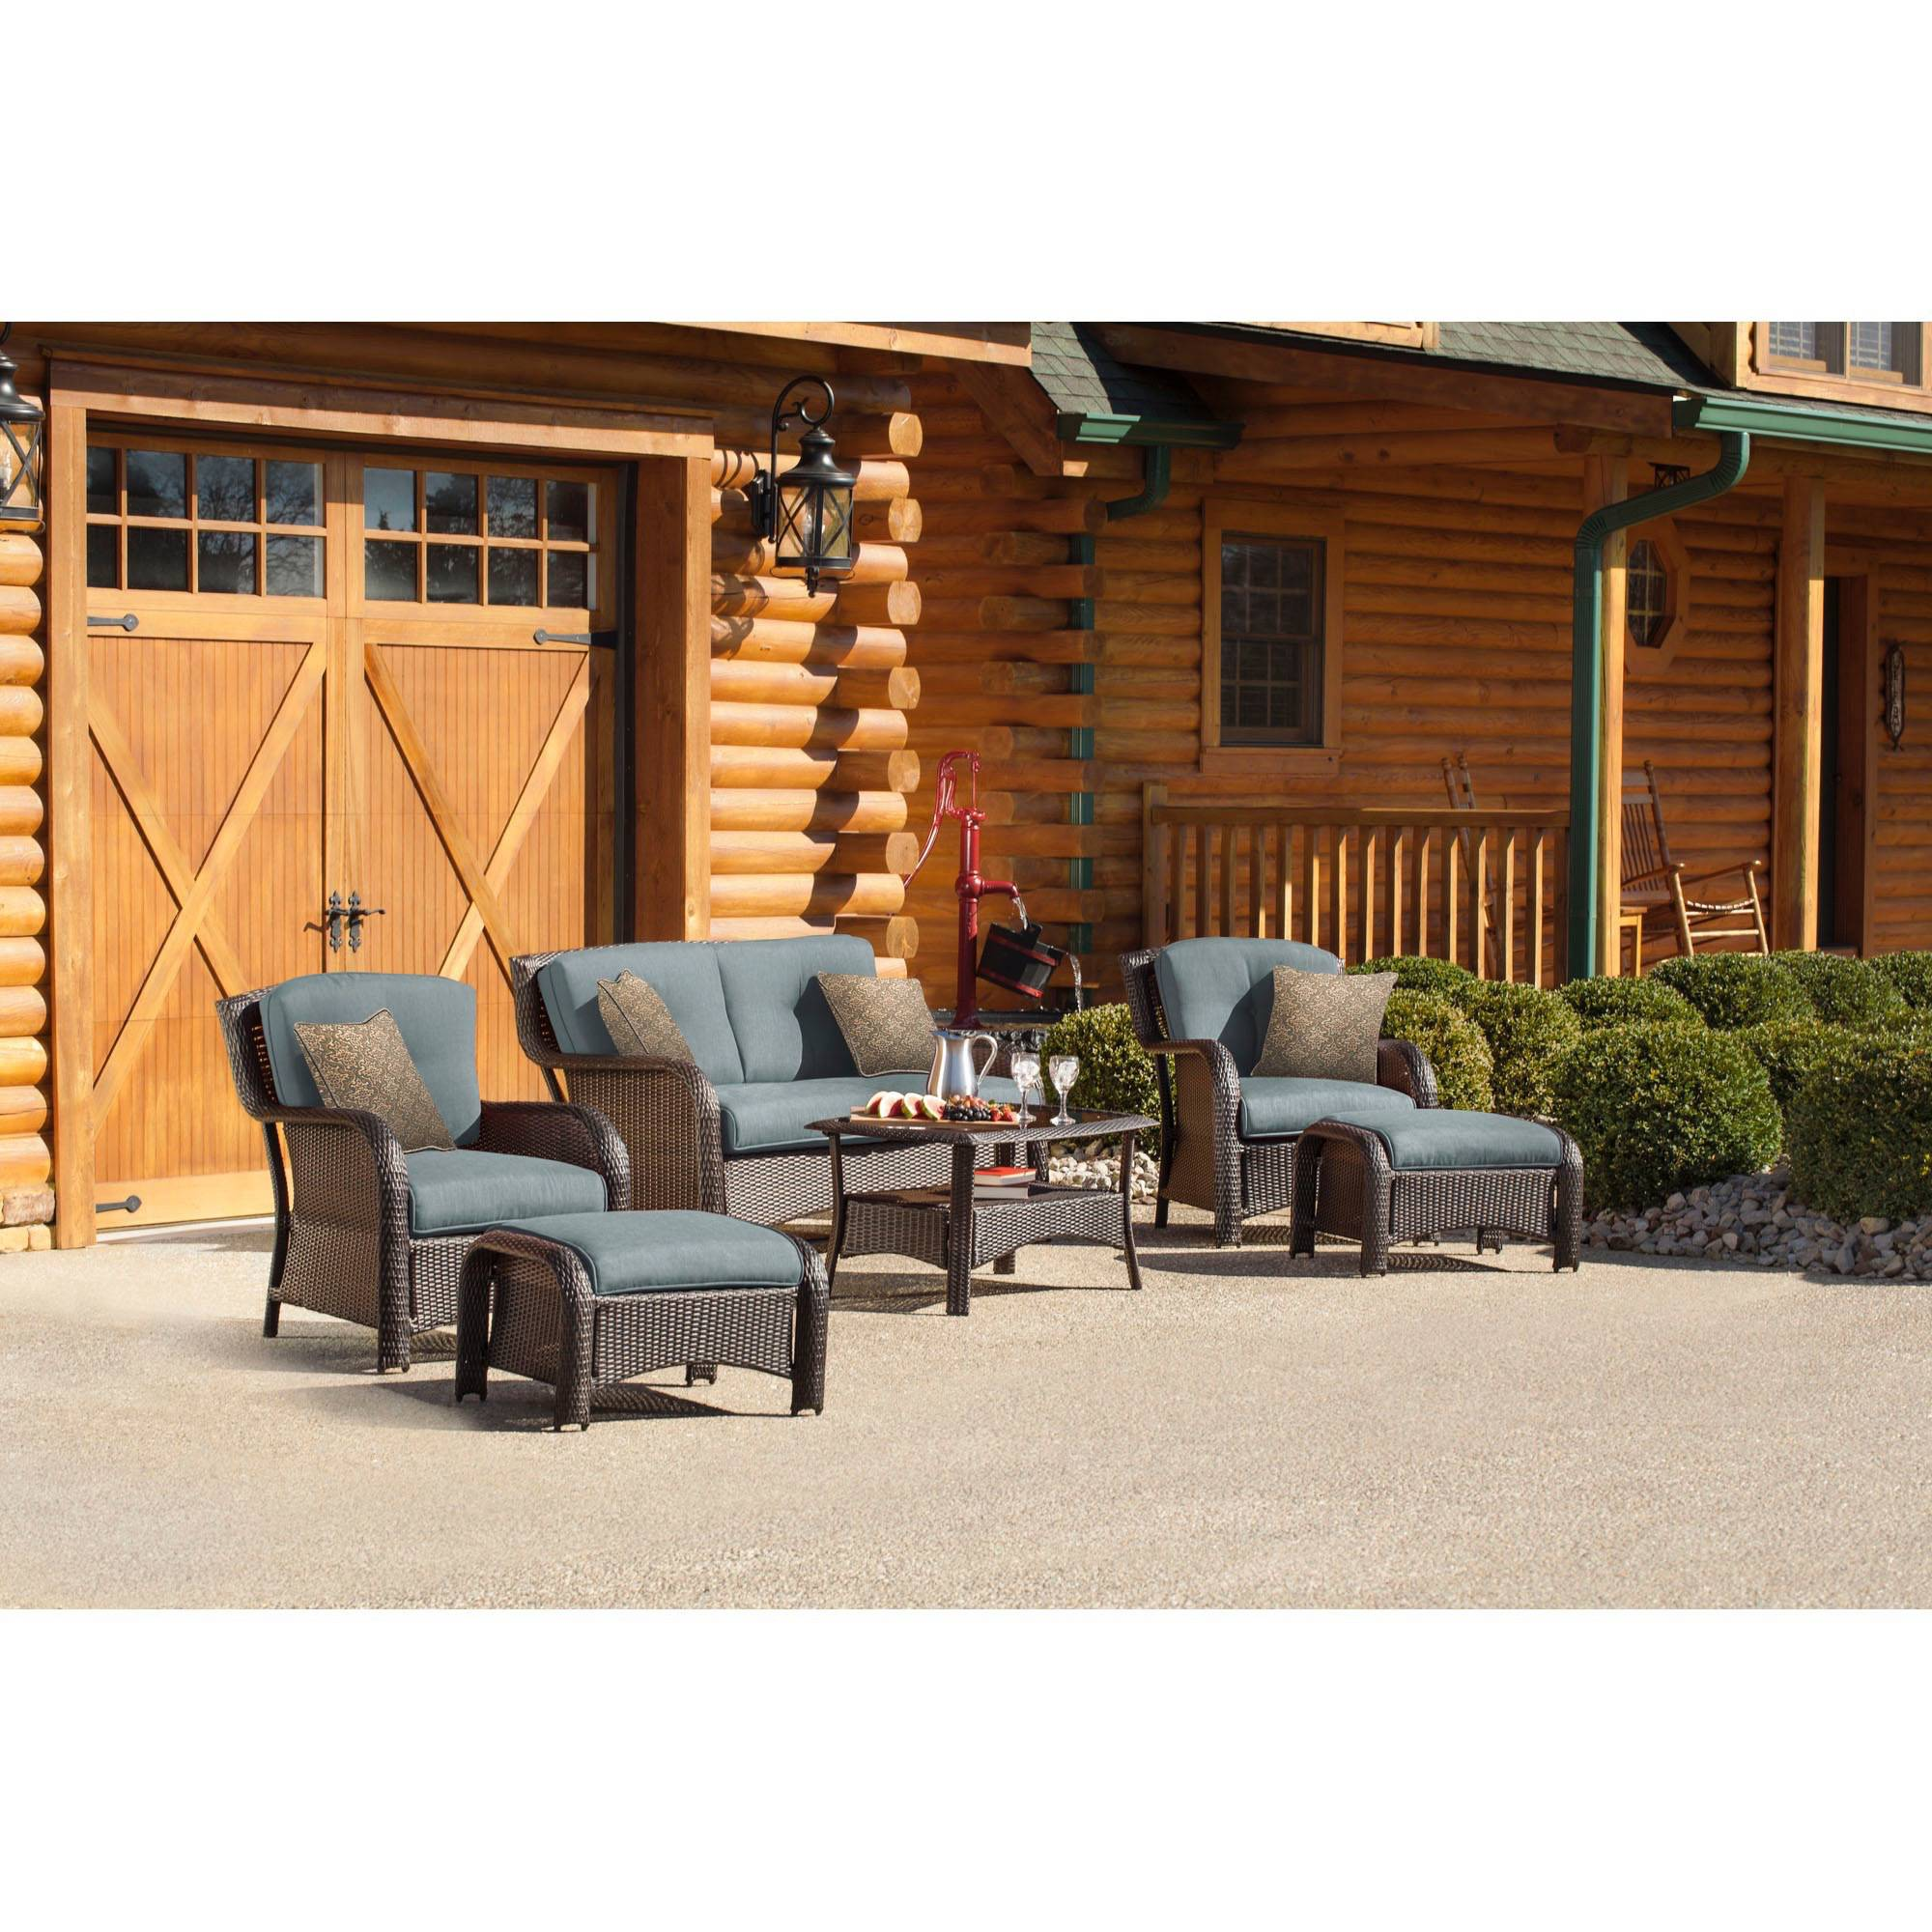 Hanover Strathmere 6-Piece Outdoor Deep-Seating Luxury Lounge Patio Set